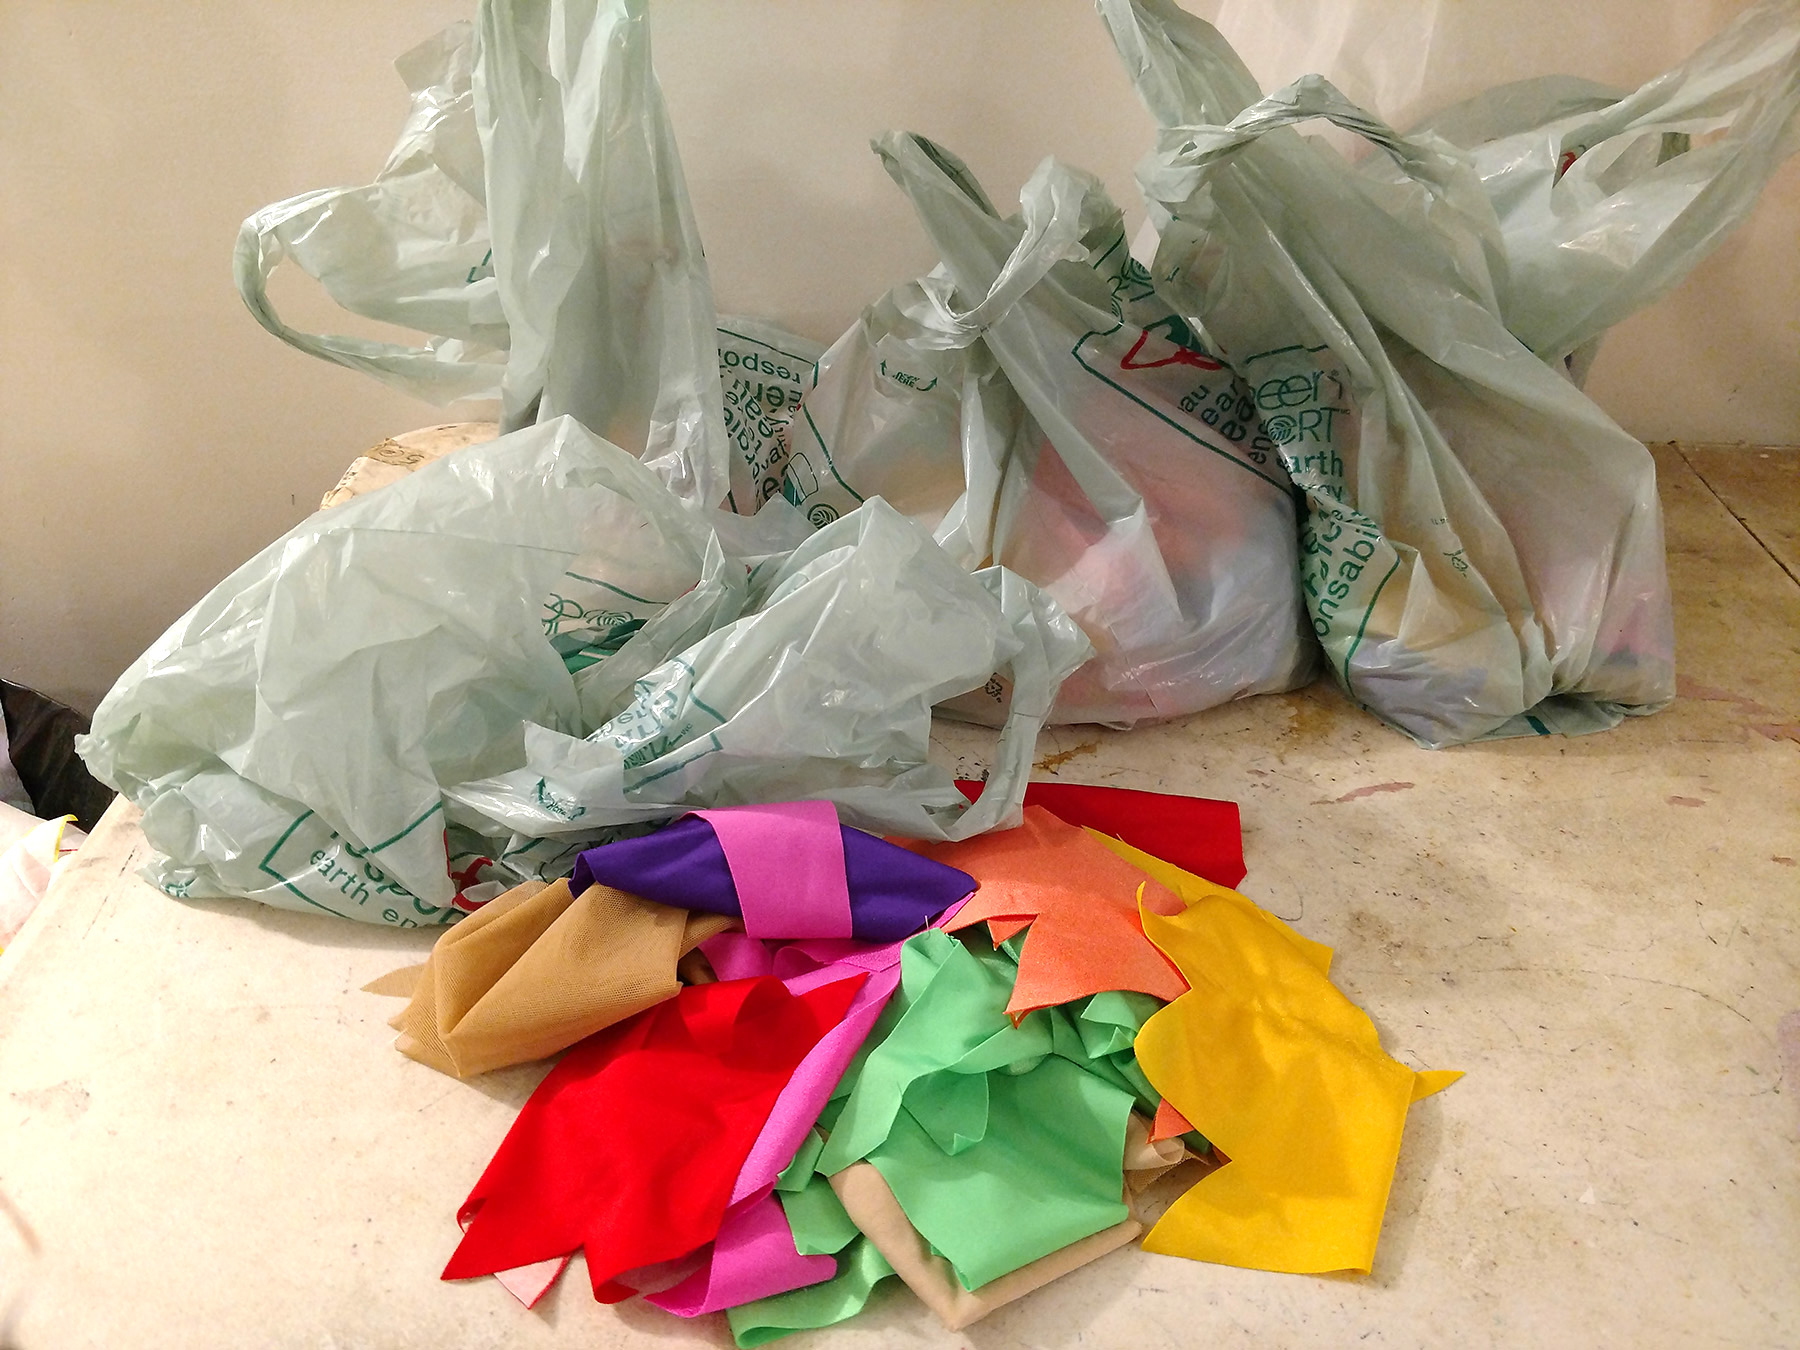 Several grey coloured grocery bags of fabric pieces, lined up behind a pile of colourful spanedx fabric pieces.